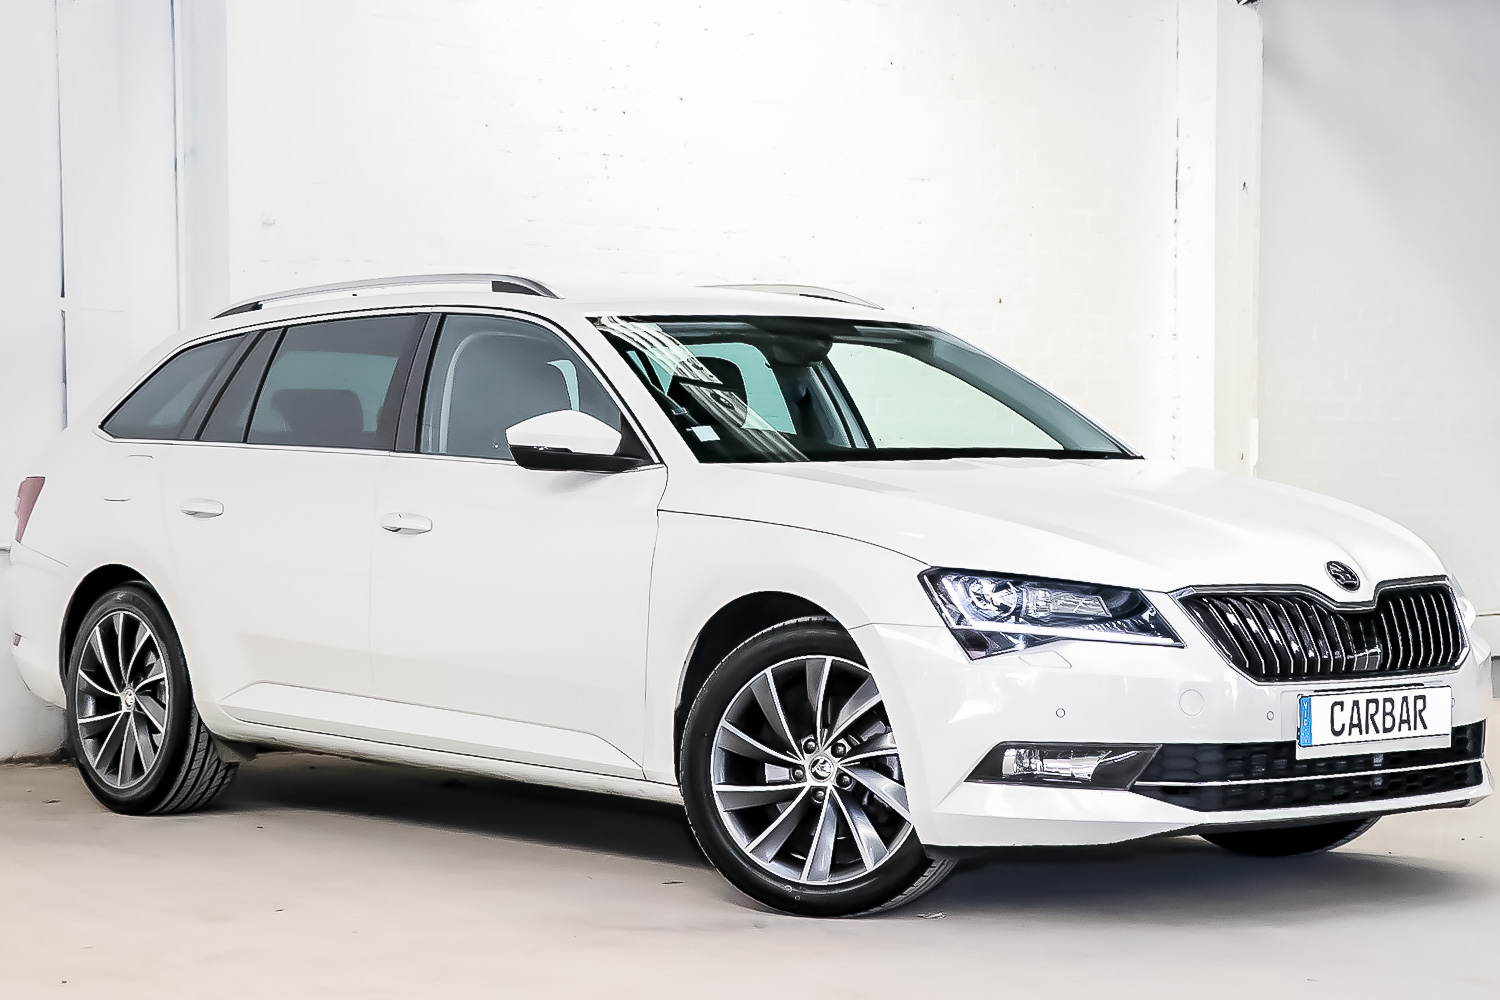 Carbar-2017-SKODA-Superb-343720190415-152402.jpg